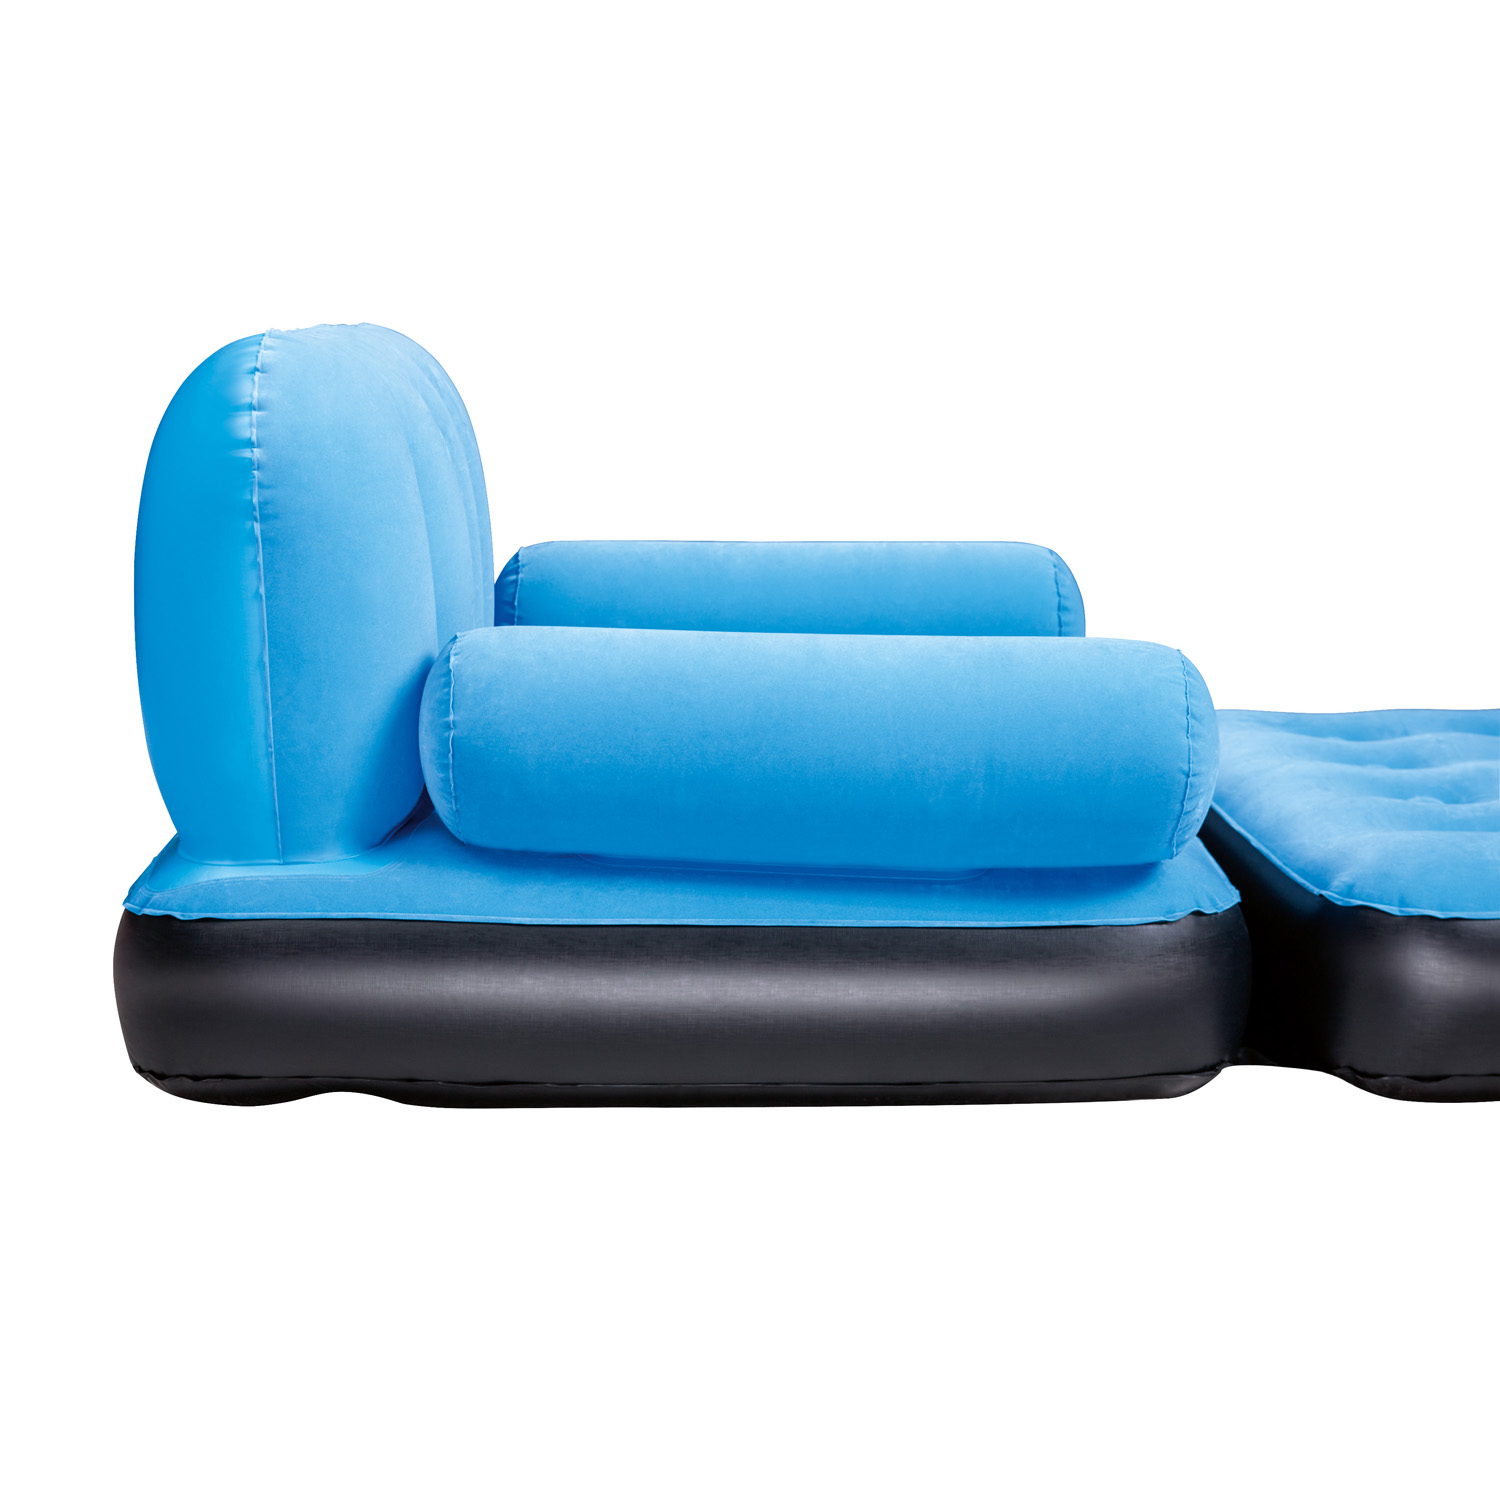 Inflatable Sofa Air Bed Lounger: Inflatable Sofa Bed Double Airbed Couch Blow Up Lounger